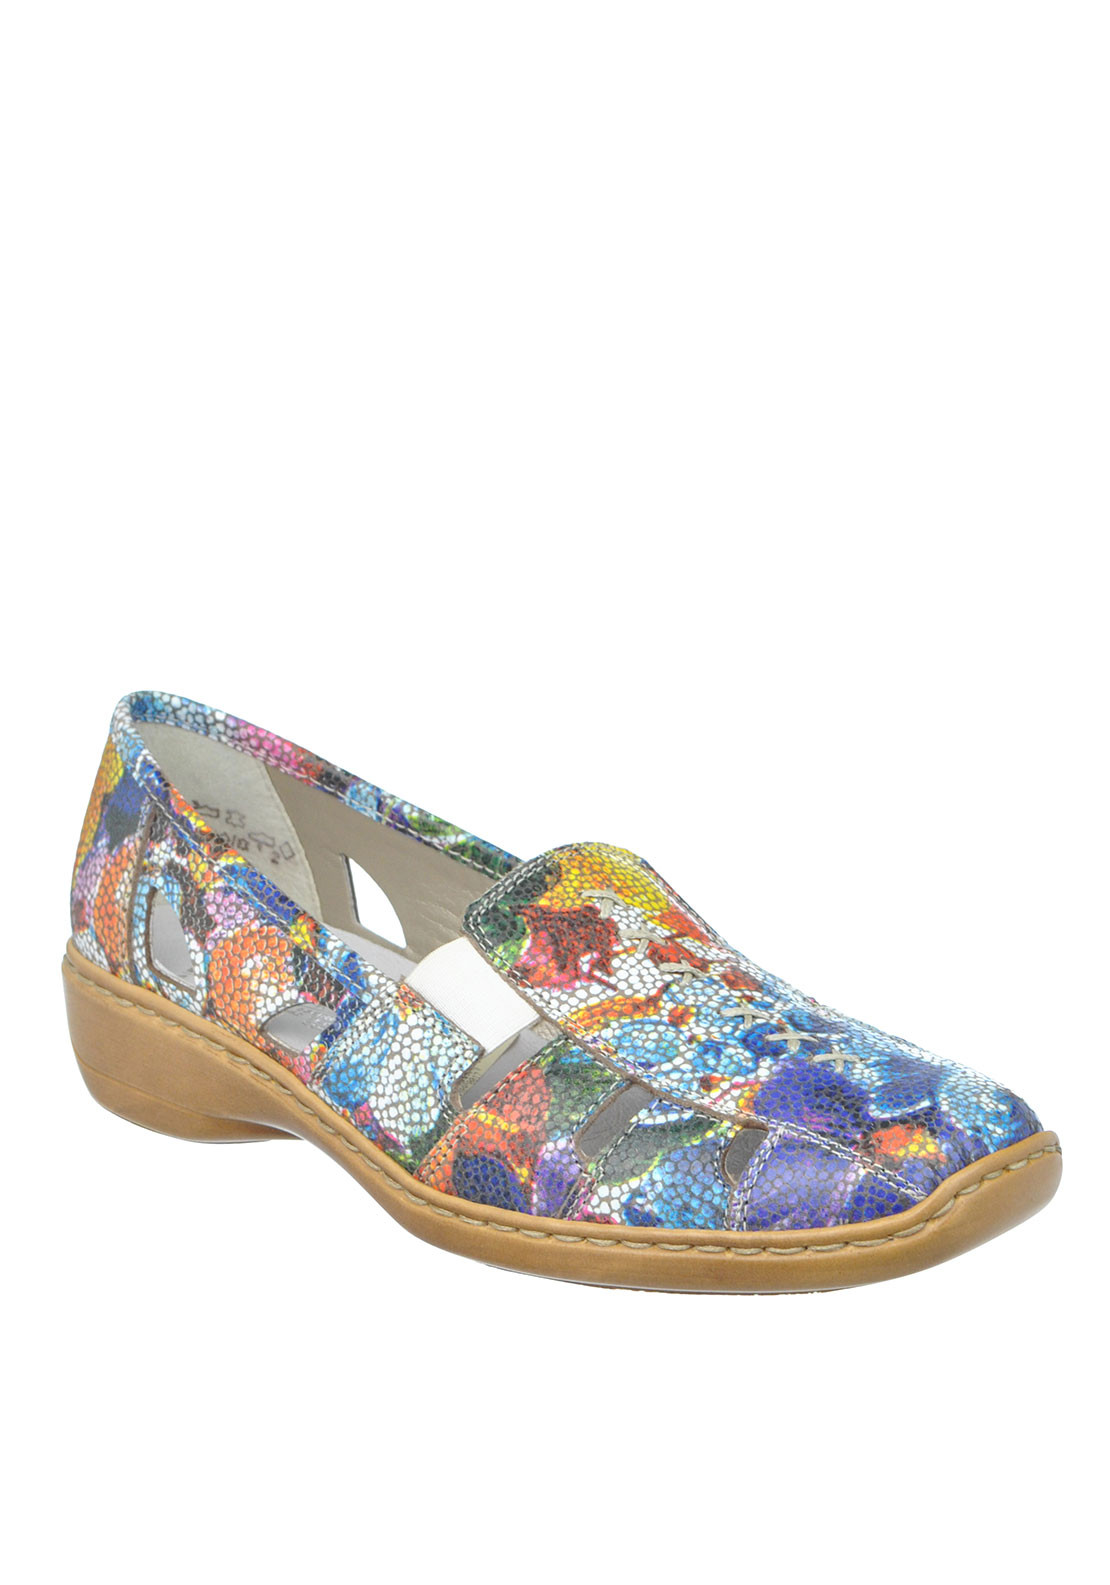 Rieker Womens Leather Cut out leather Shoe, Multi-Coloured